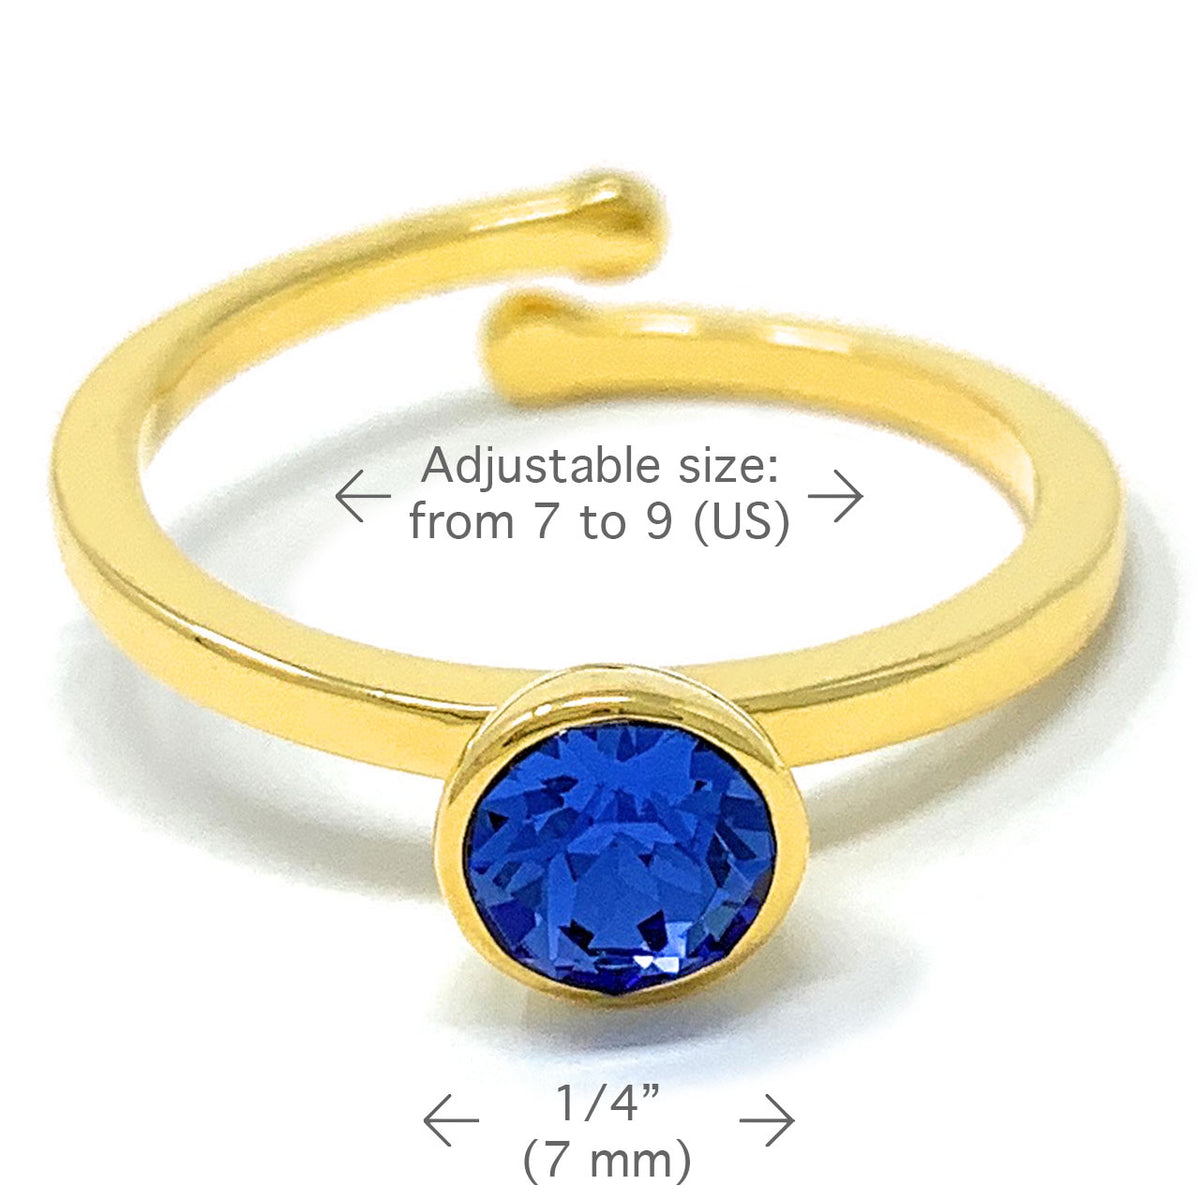 Harley Adjustable Ring with Blue Sapphire Round Crystals from Swarovski Gold Plated - Ed Heart